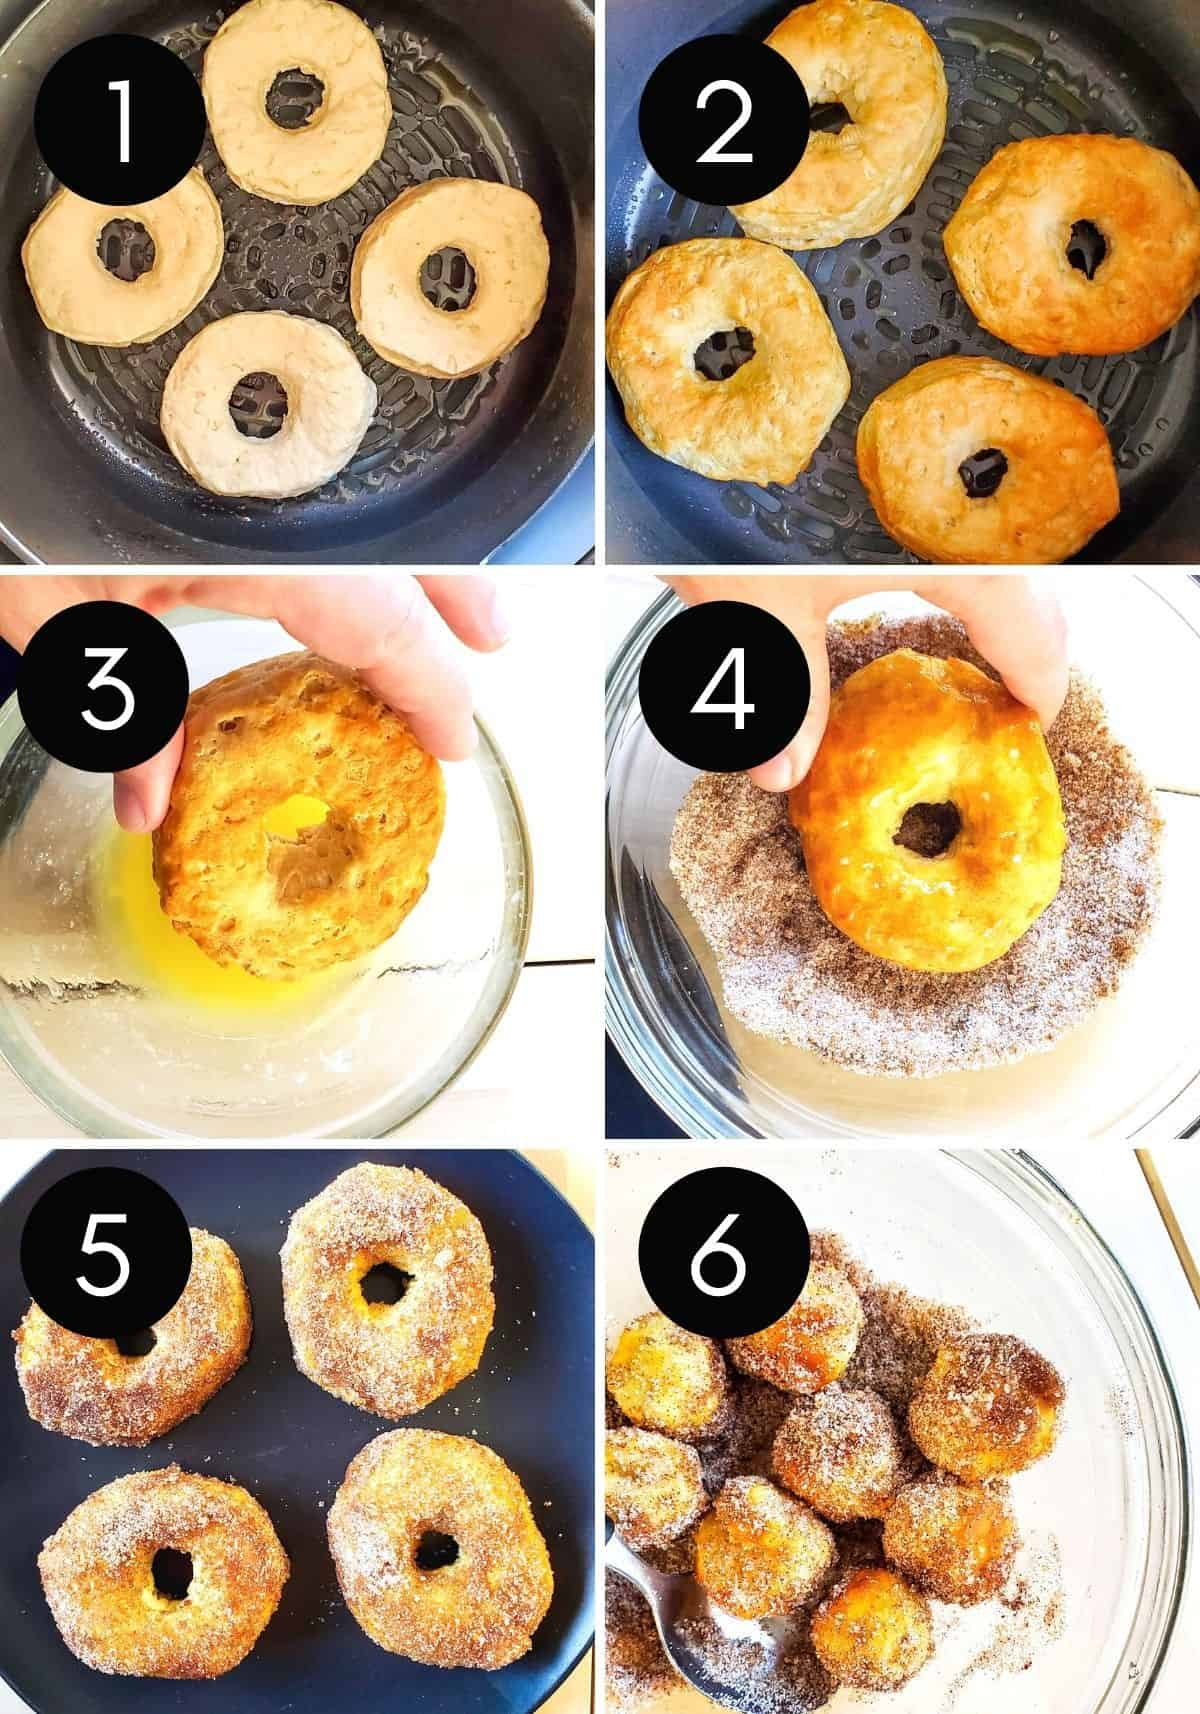 Six prep image collage showing donuts being air fried then coated.